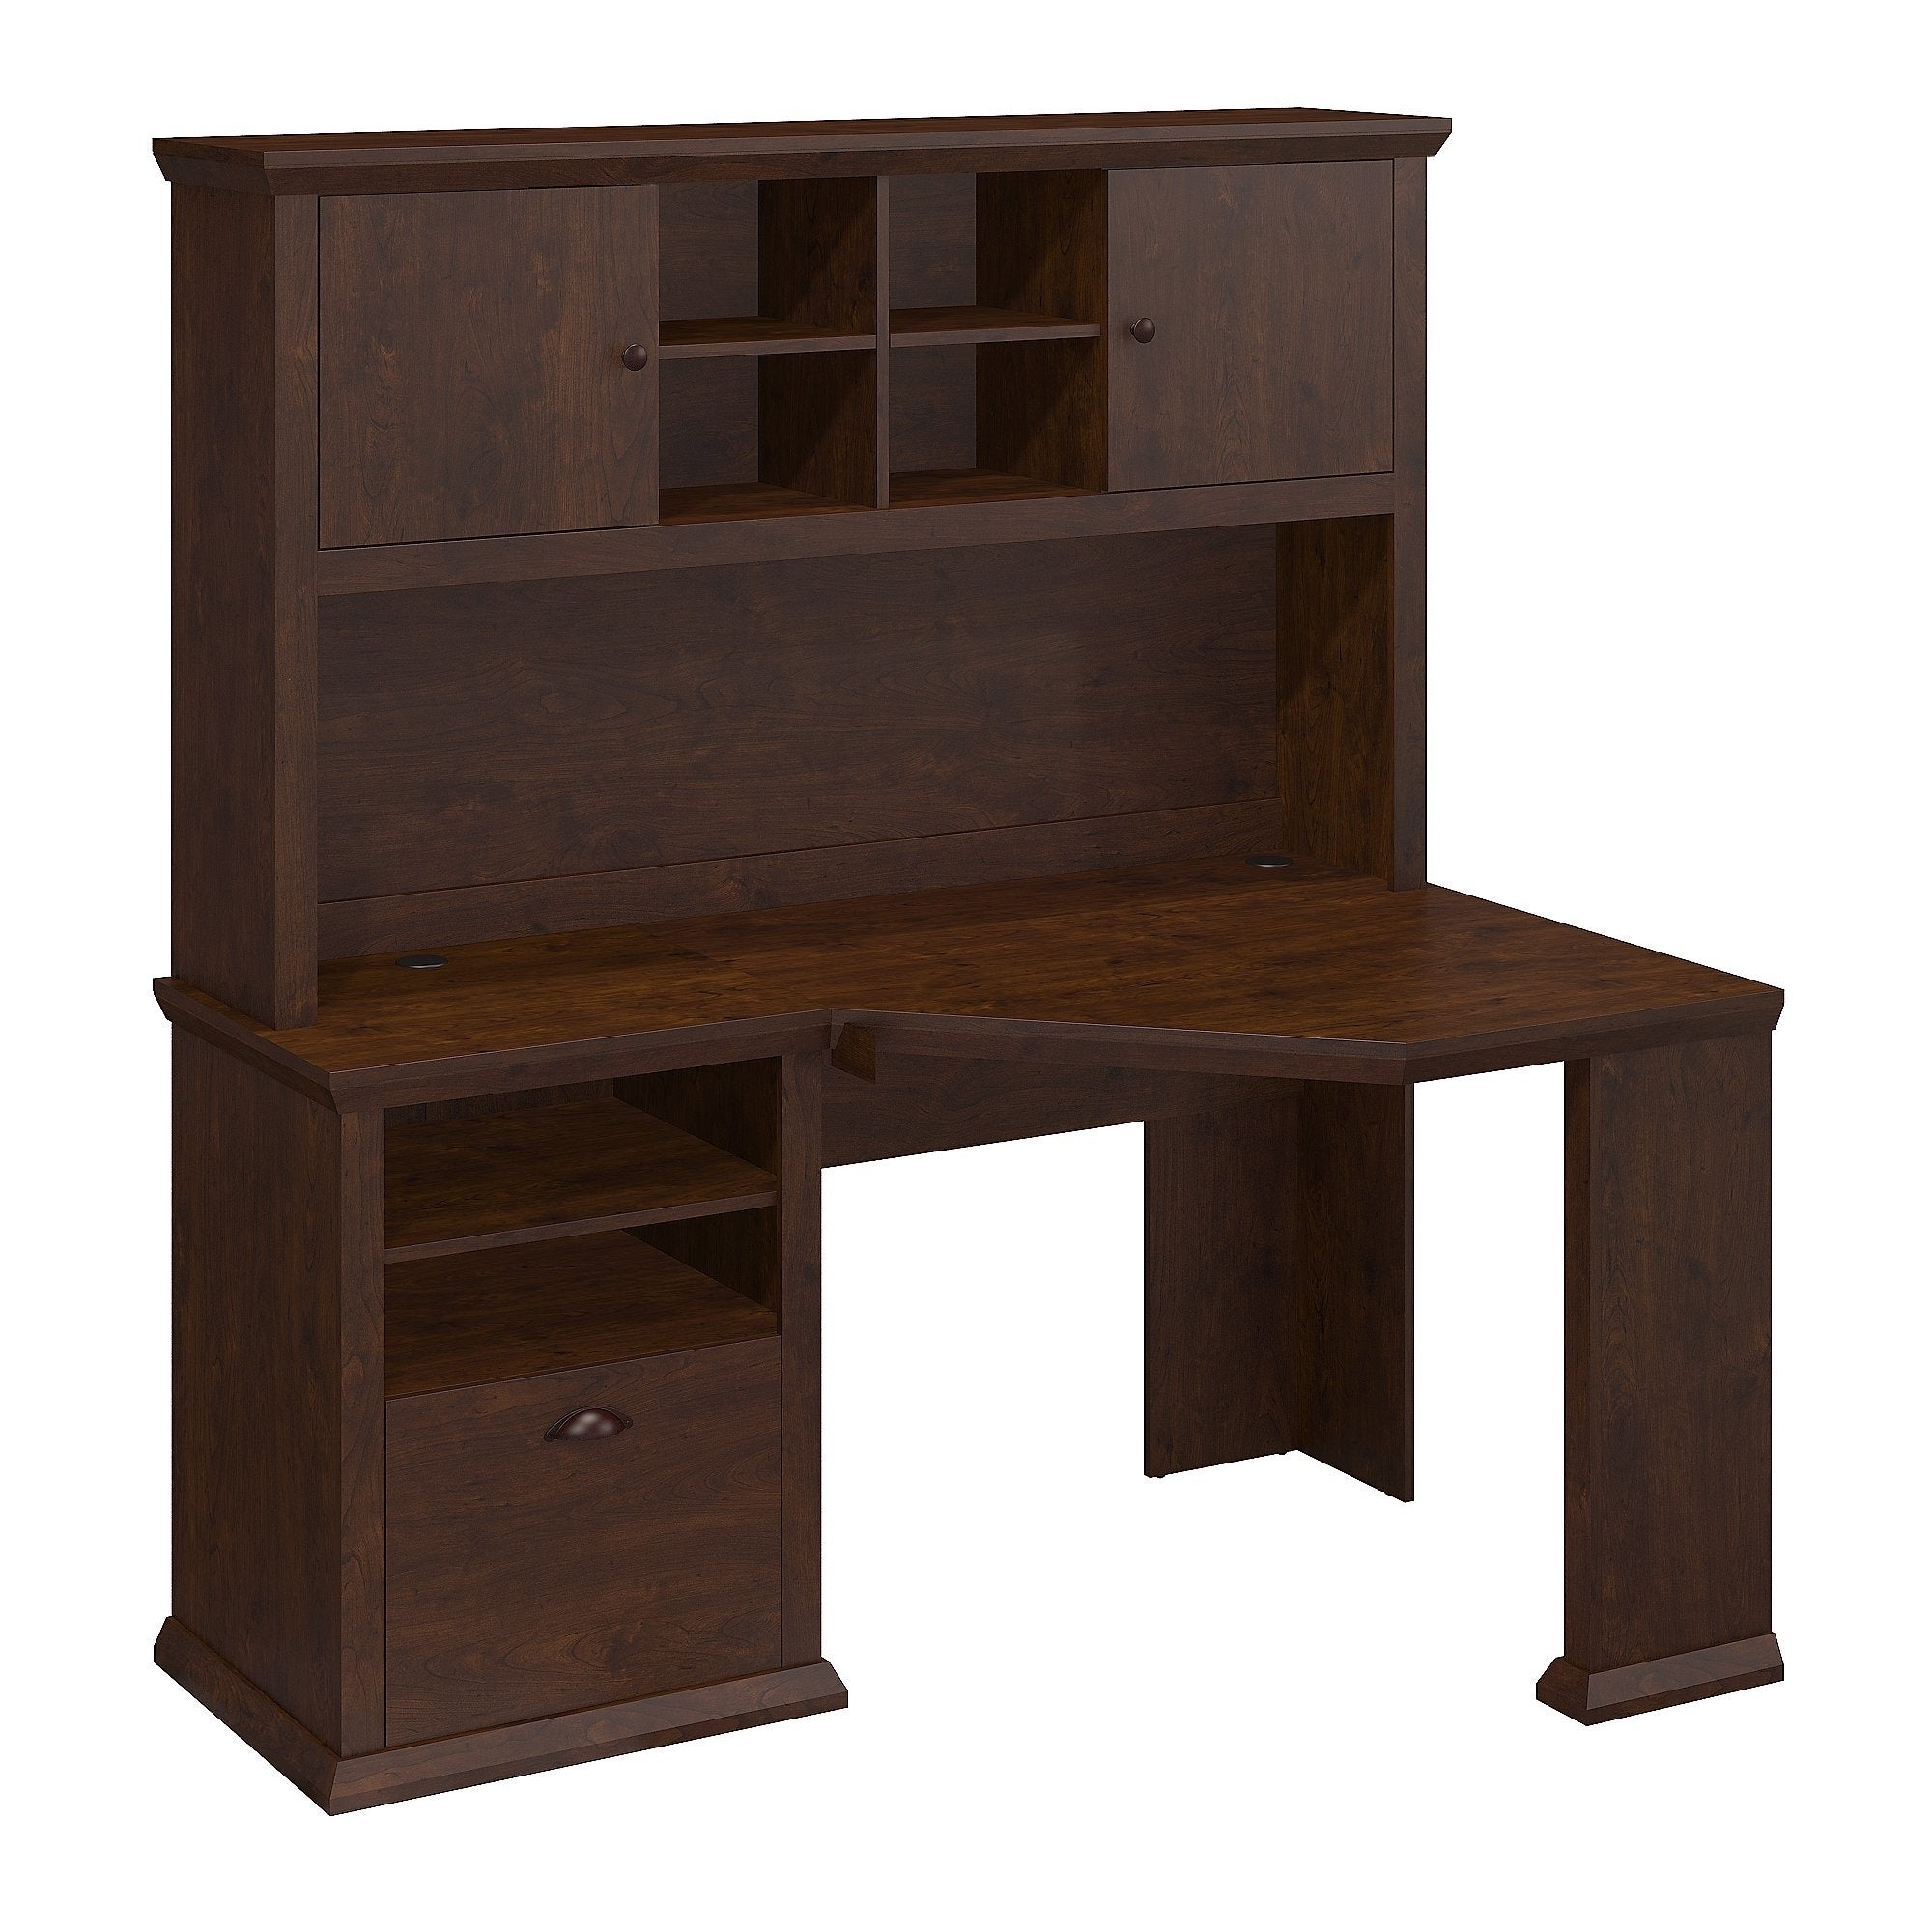 Bush Furniture Yorktown Corner Desk With Hutch In Antique Cherry   Free  Shipping Today   Overstock.com   17285842